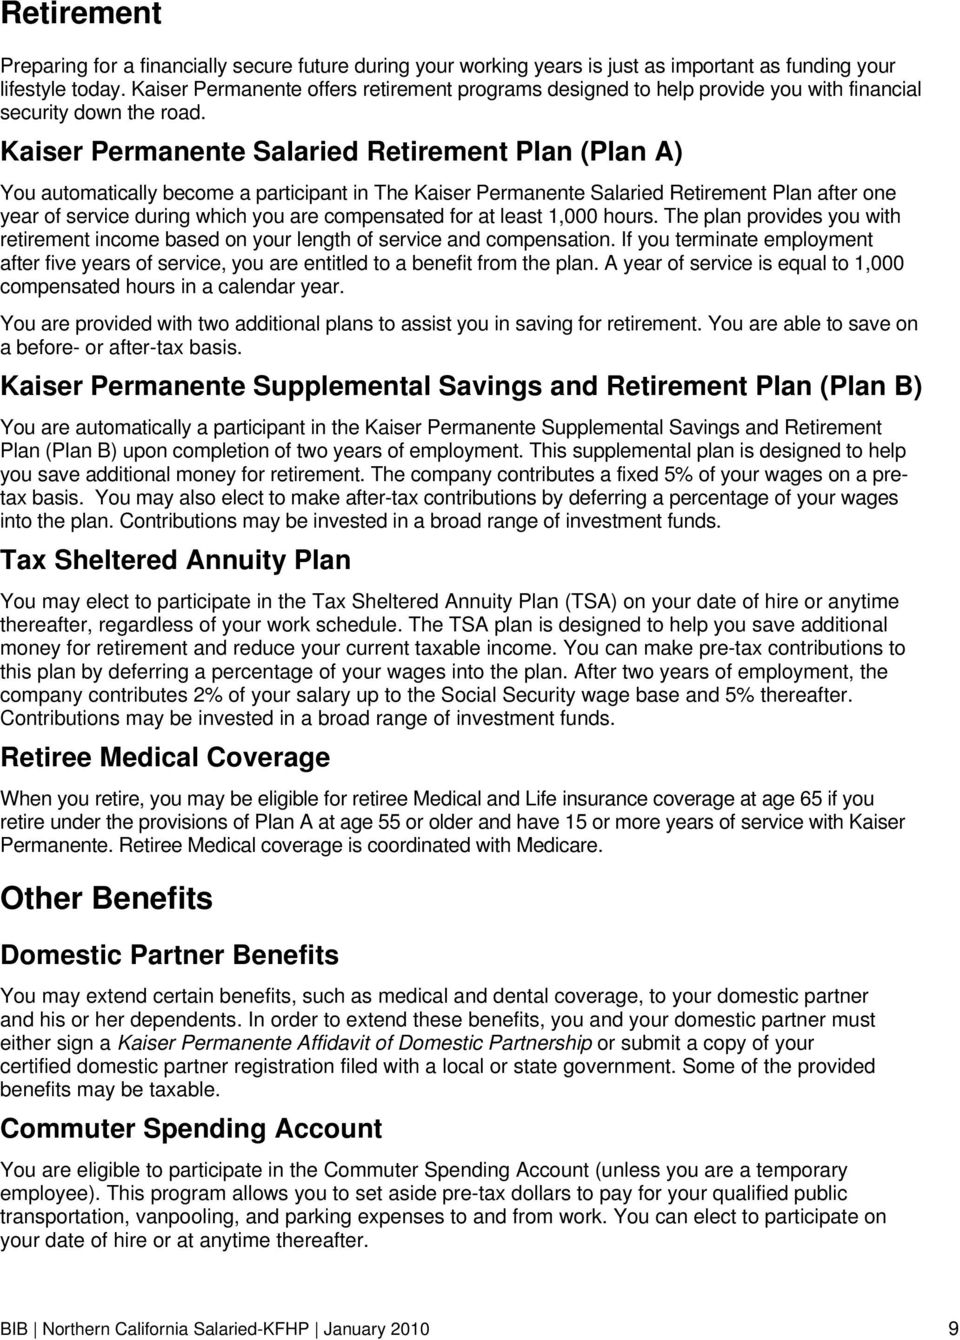 Kaiser Permanente Salaried Retirement Plan (Plan A) You automatically become a participant in The Kaiser Permanente Salaried Retirement Plan after one year of service during which you are compensated